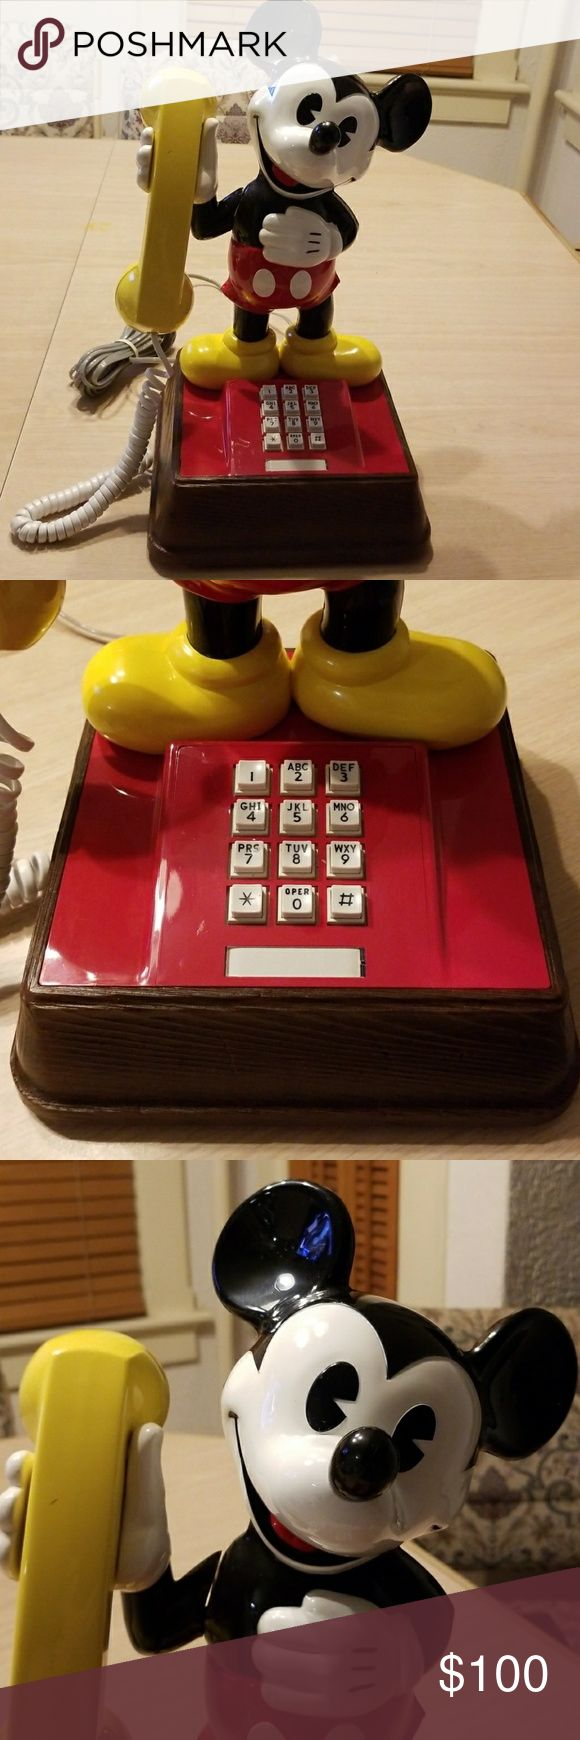 Vintage Mickey Mouse telephone Christmas is coming! Do you know a true Disney fa…